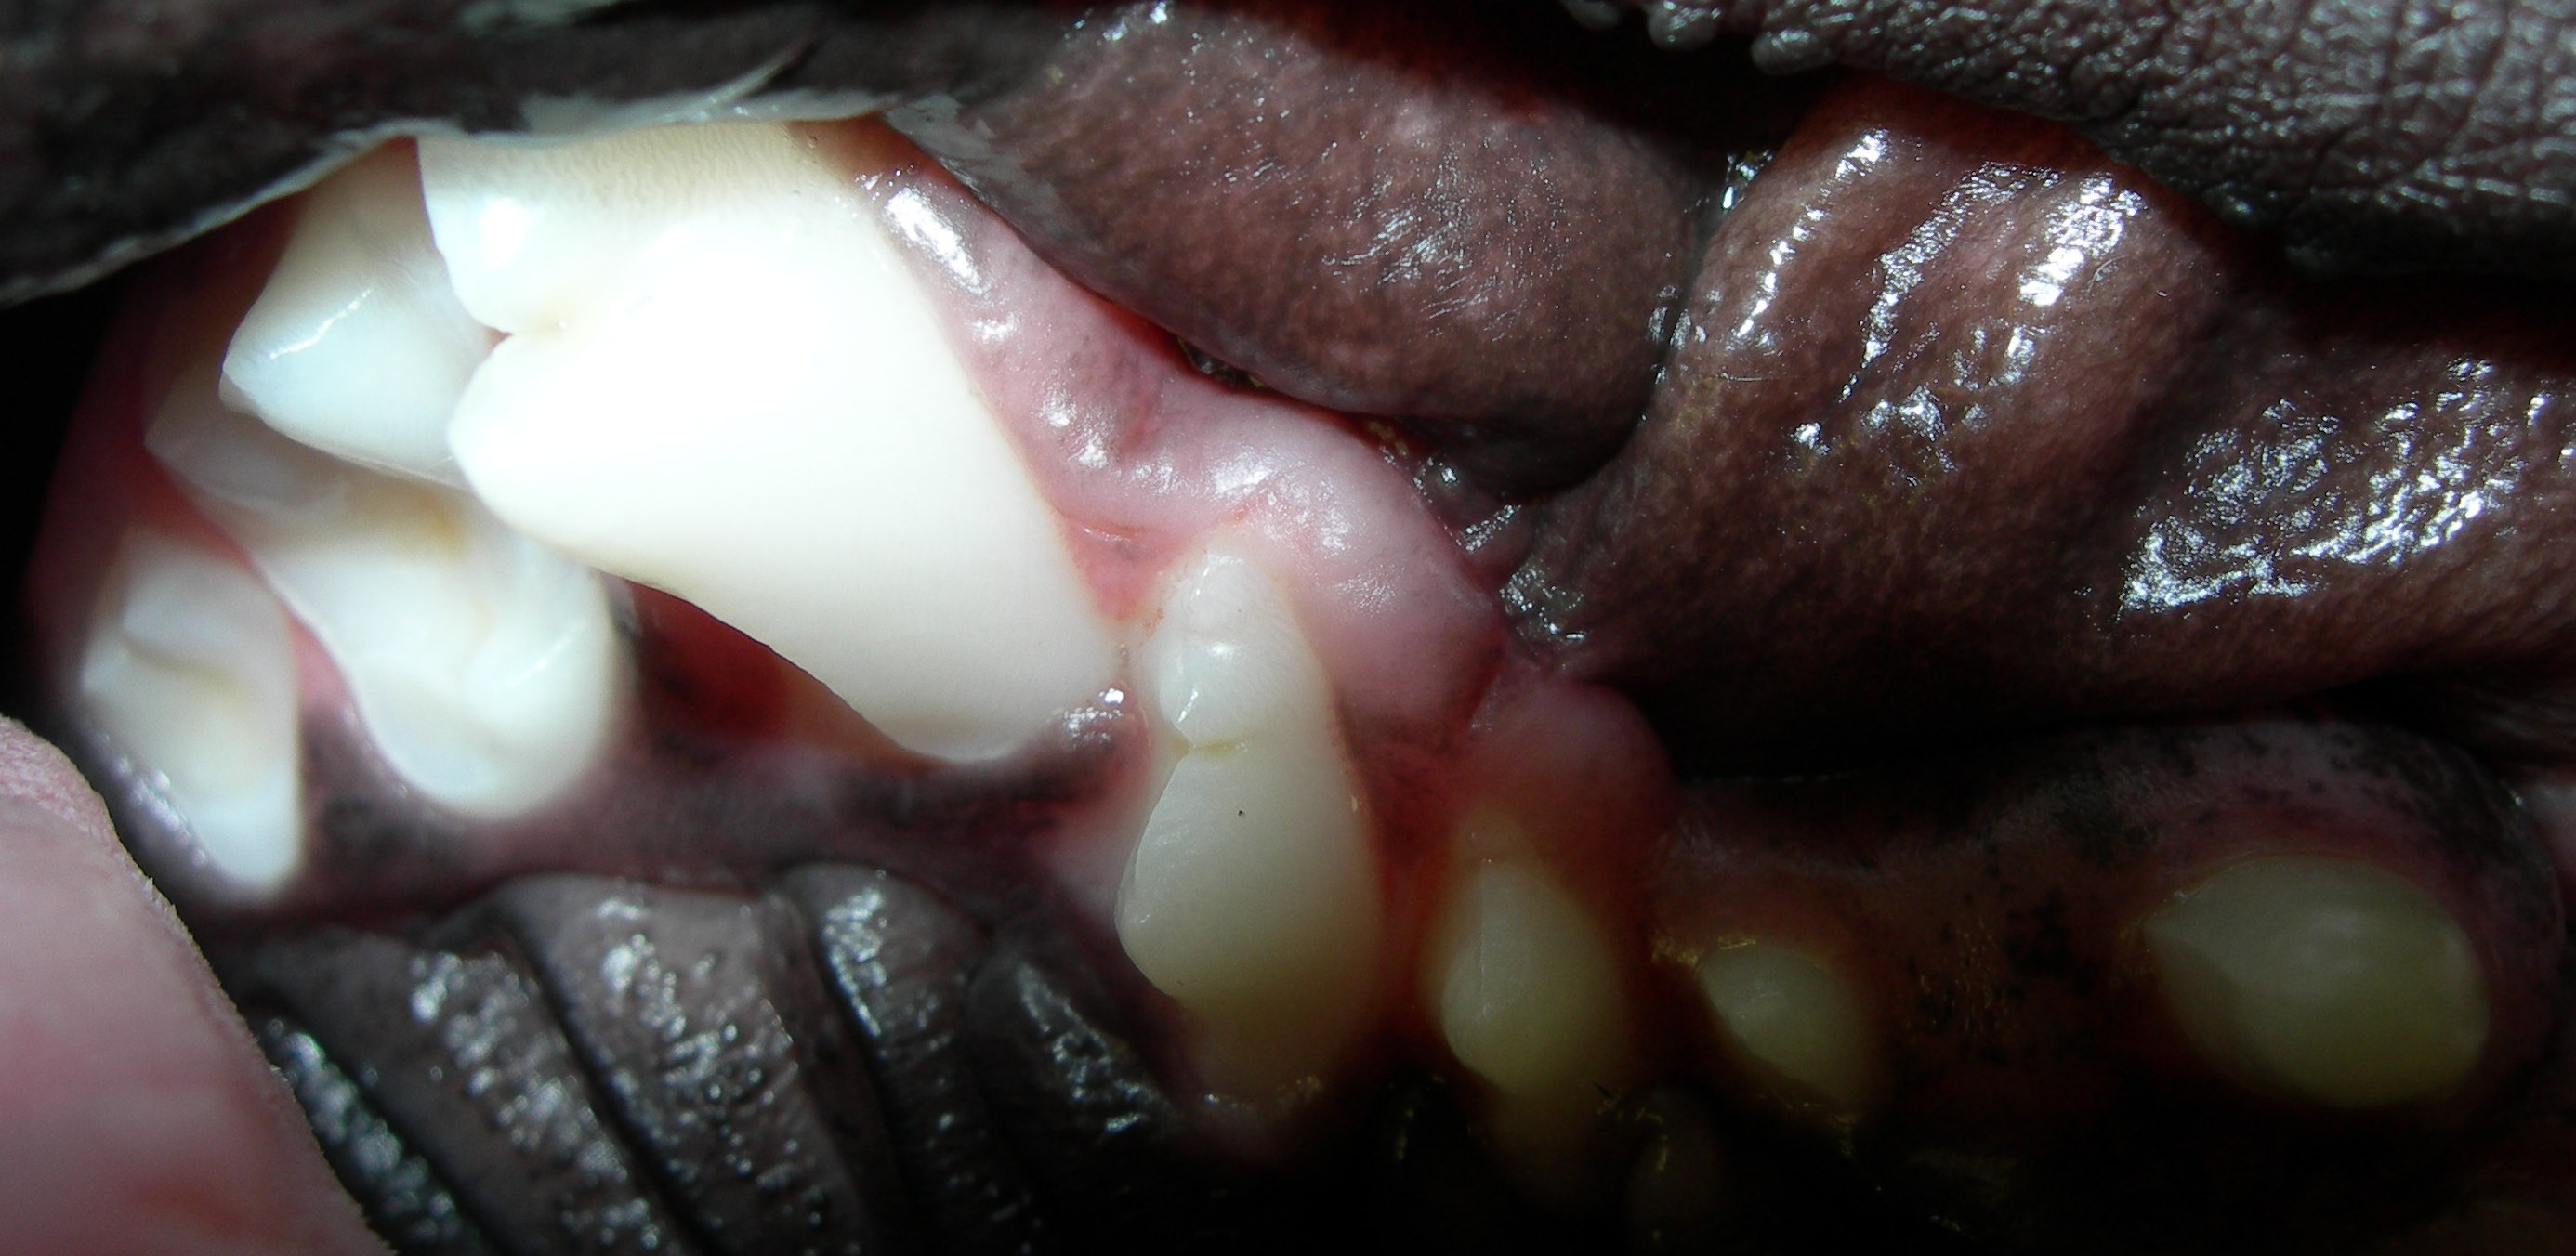 See the contact between the larger and smaller tooth? Both with be lost if nothing is done.